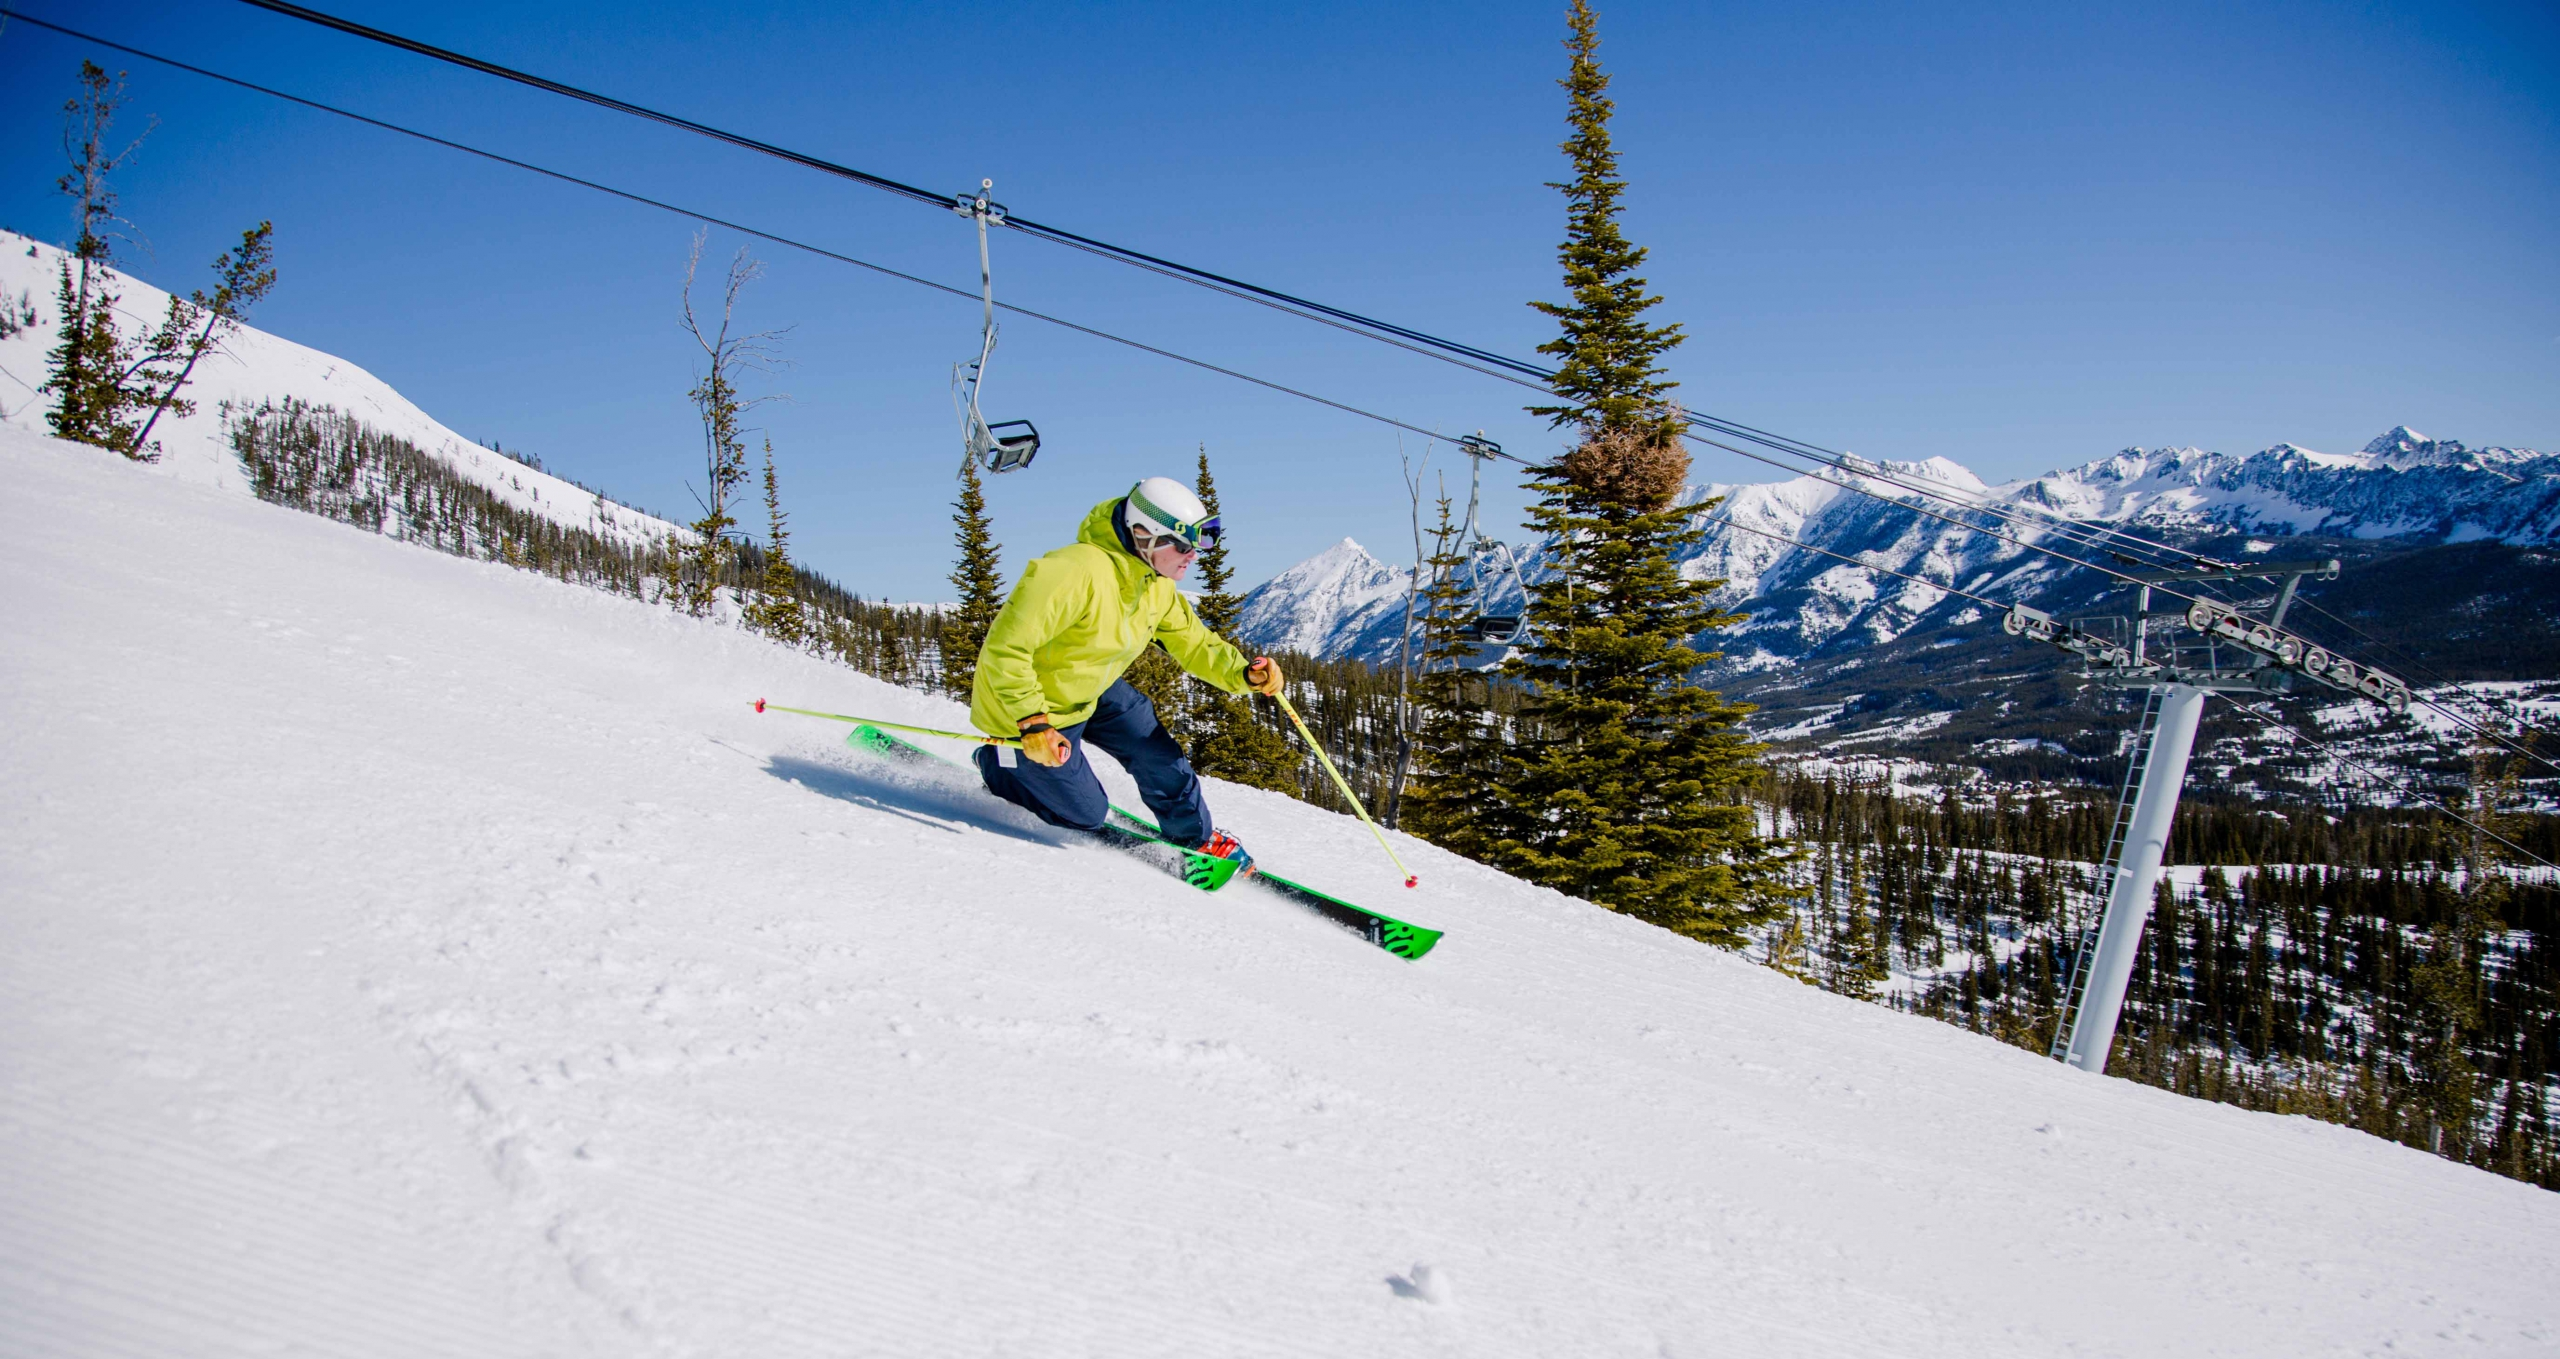 PSIA Telemark Team Member Grant Bishop tele skis at Big Sky Resort